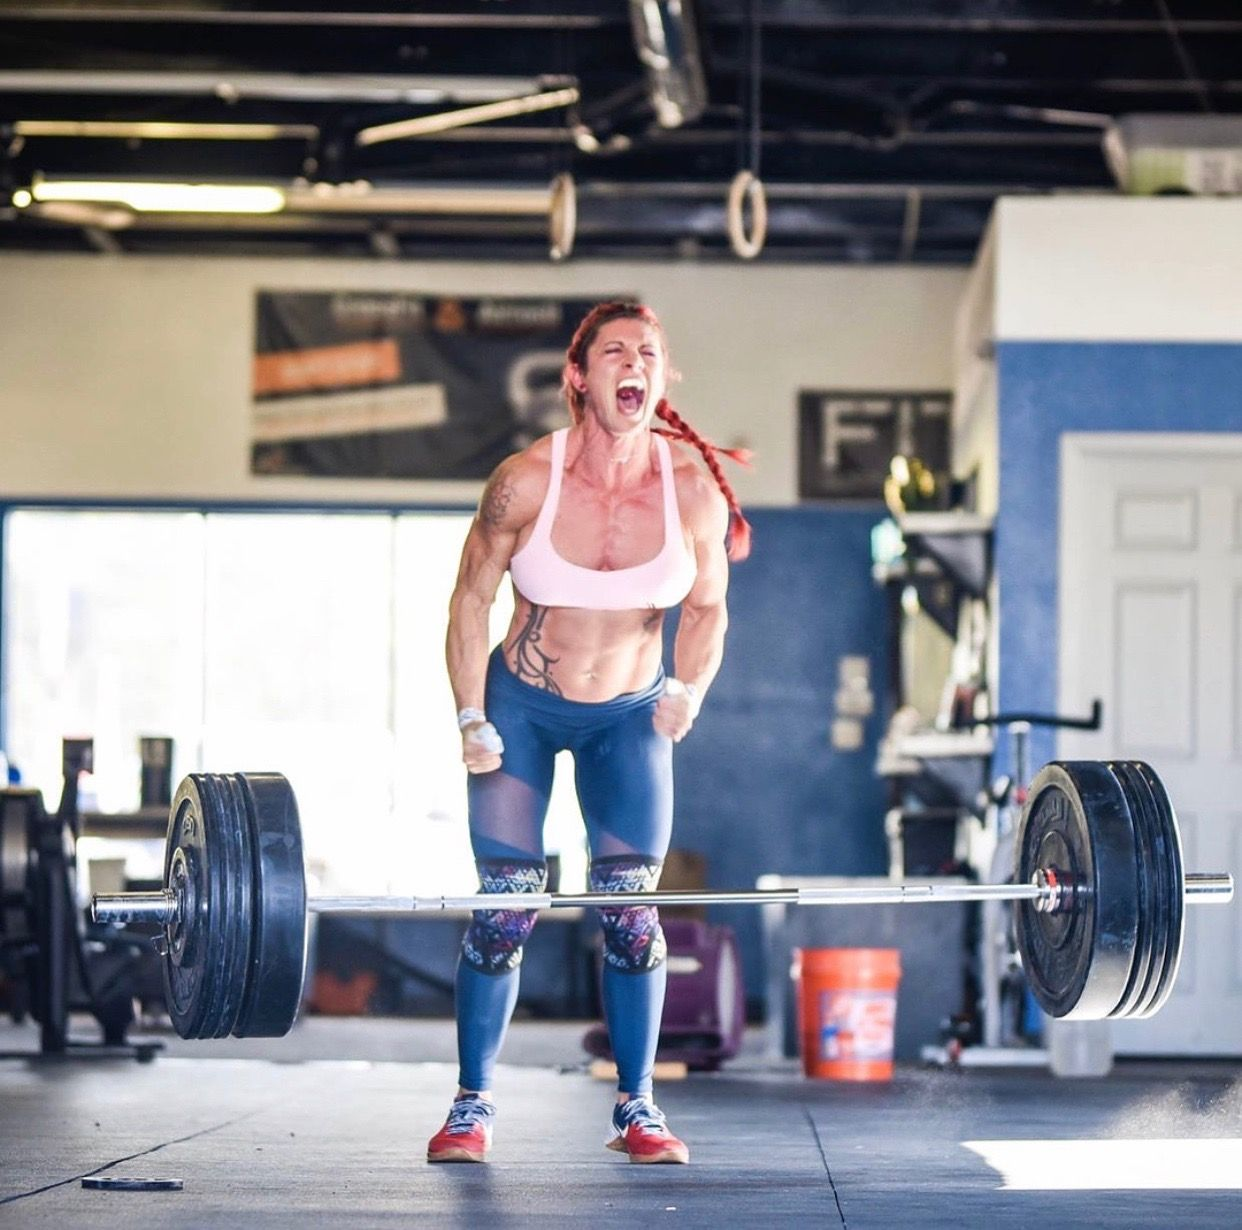 Pin on Crossfit+Motivation+Fitness